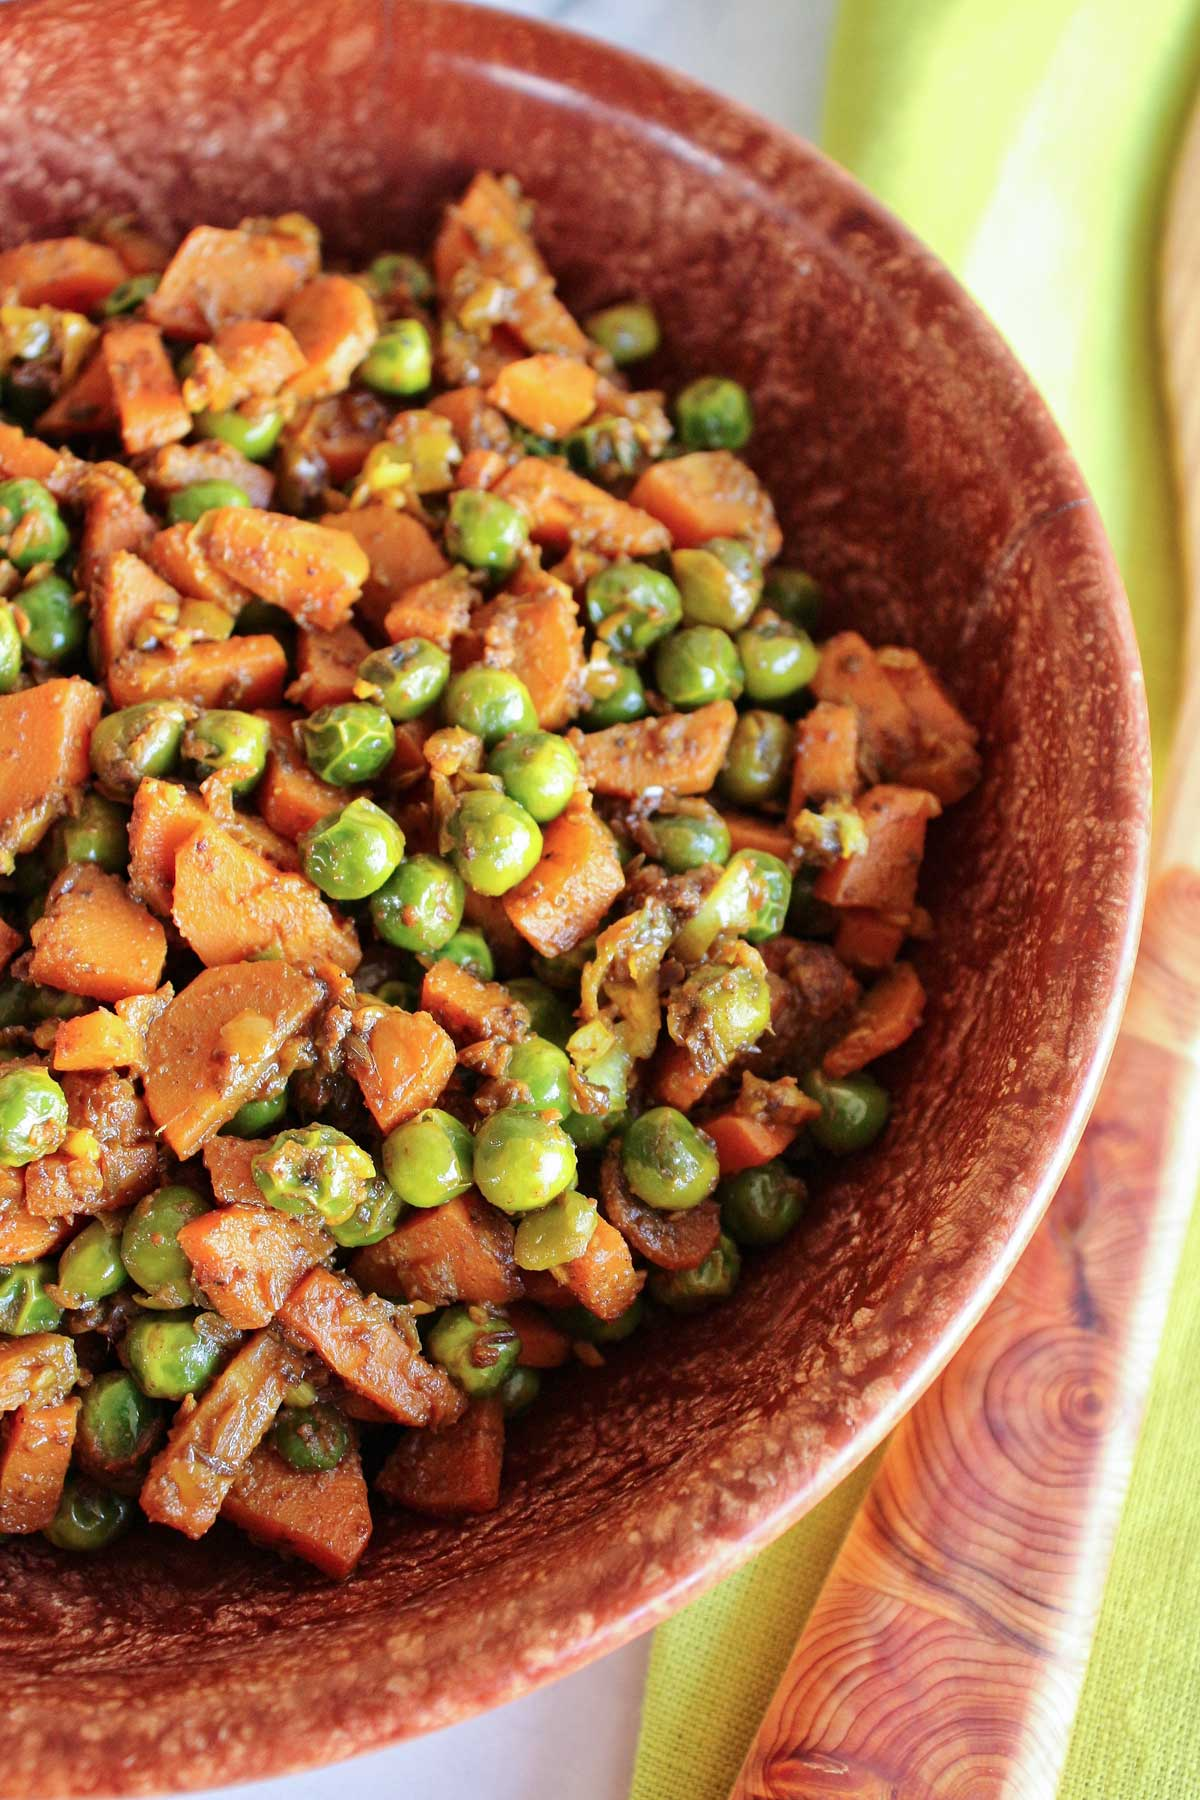 Closeup of Indian carrots and peas in a rustic brown bowl.